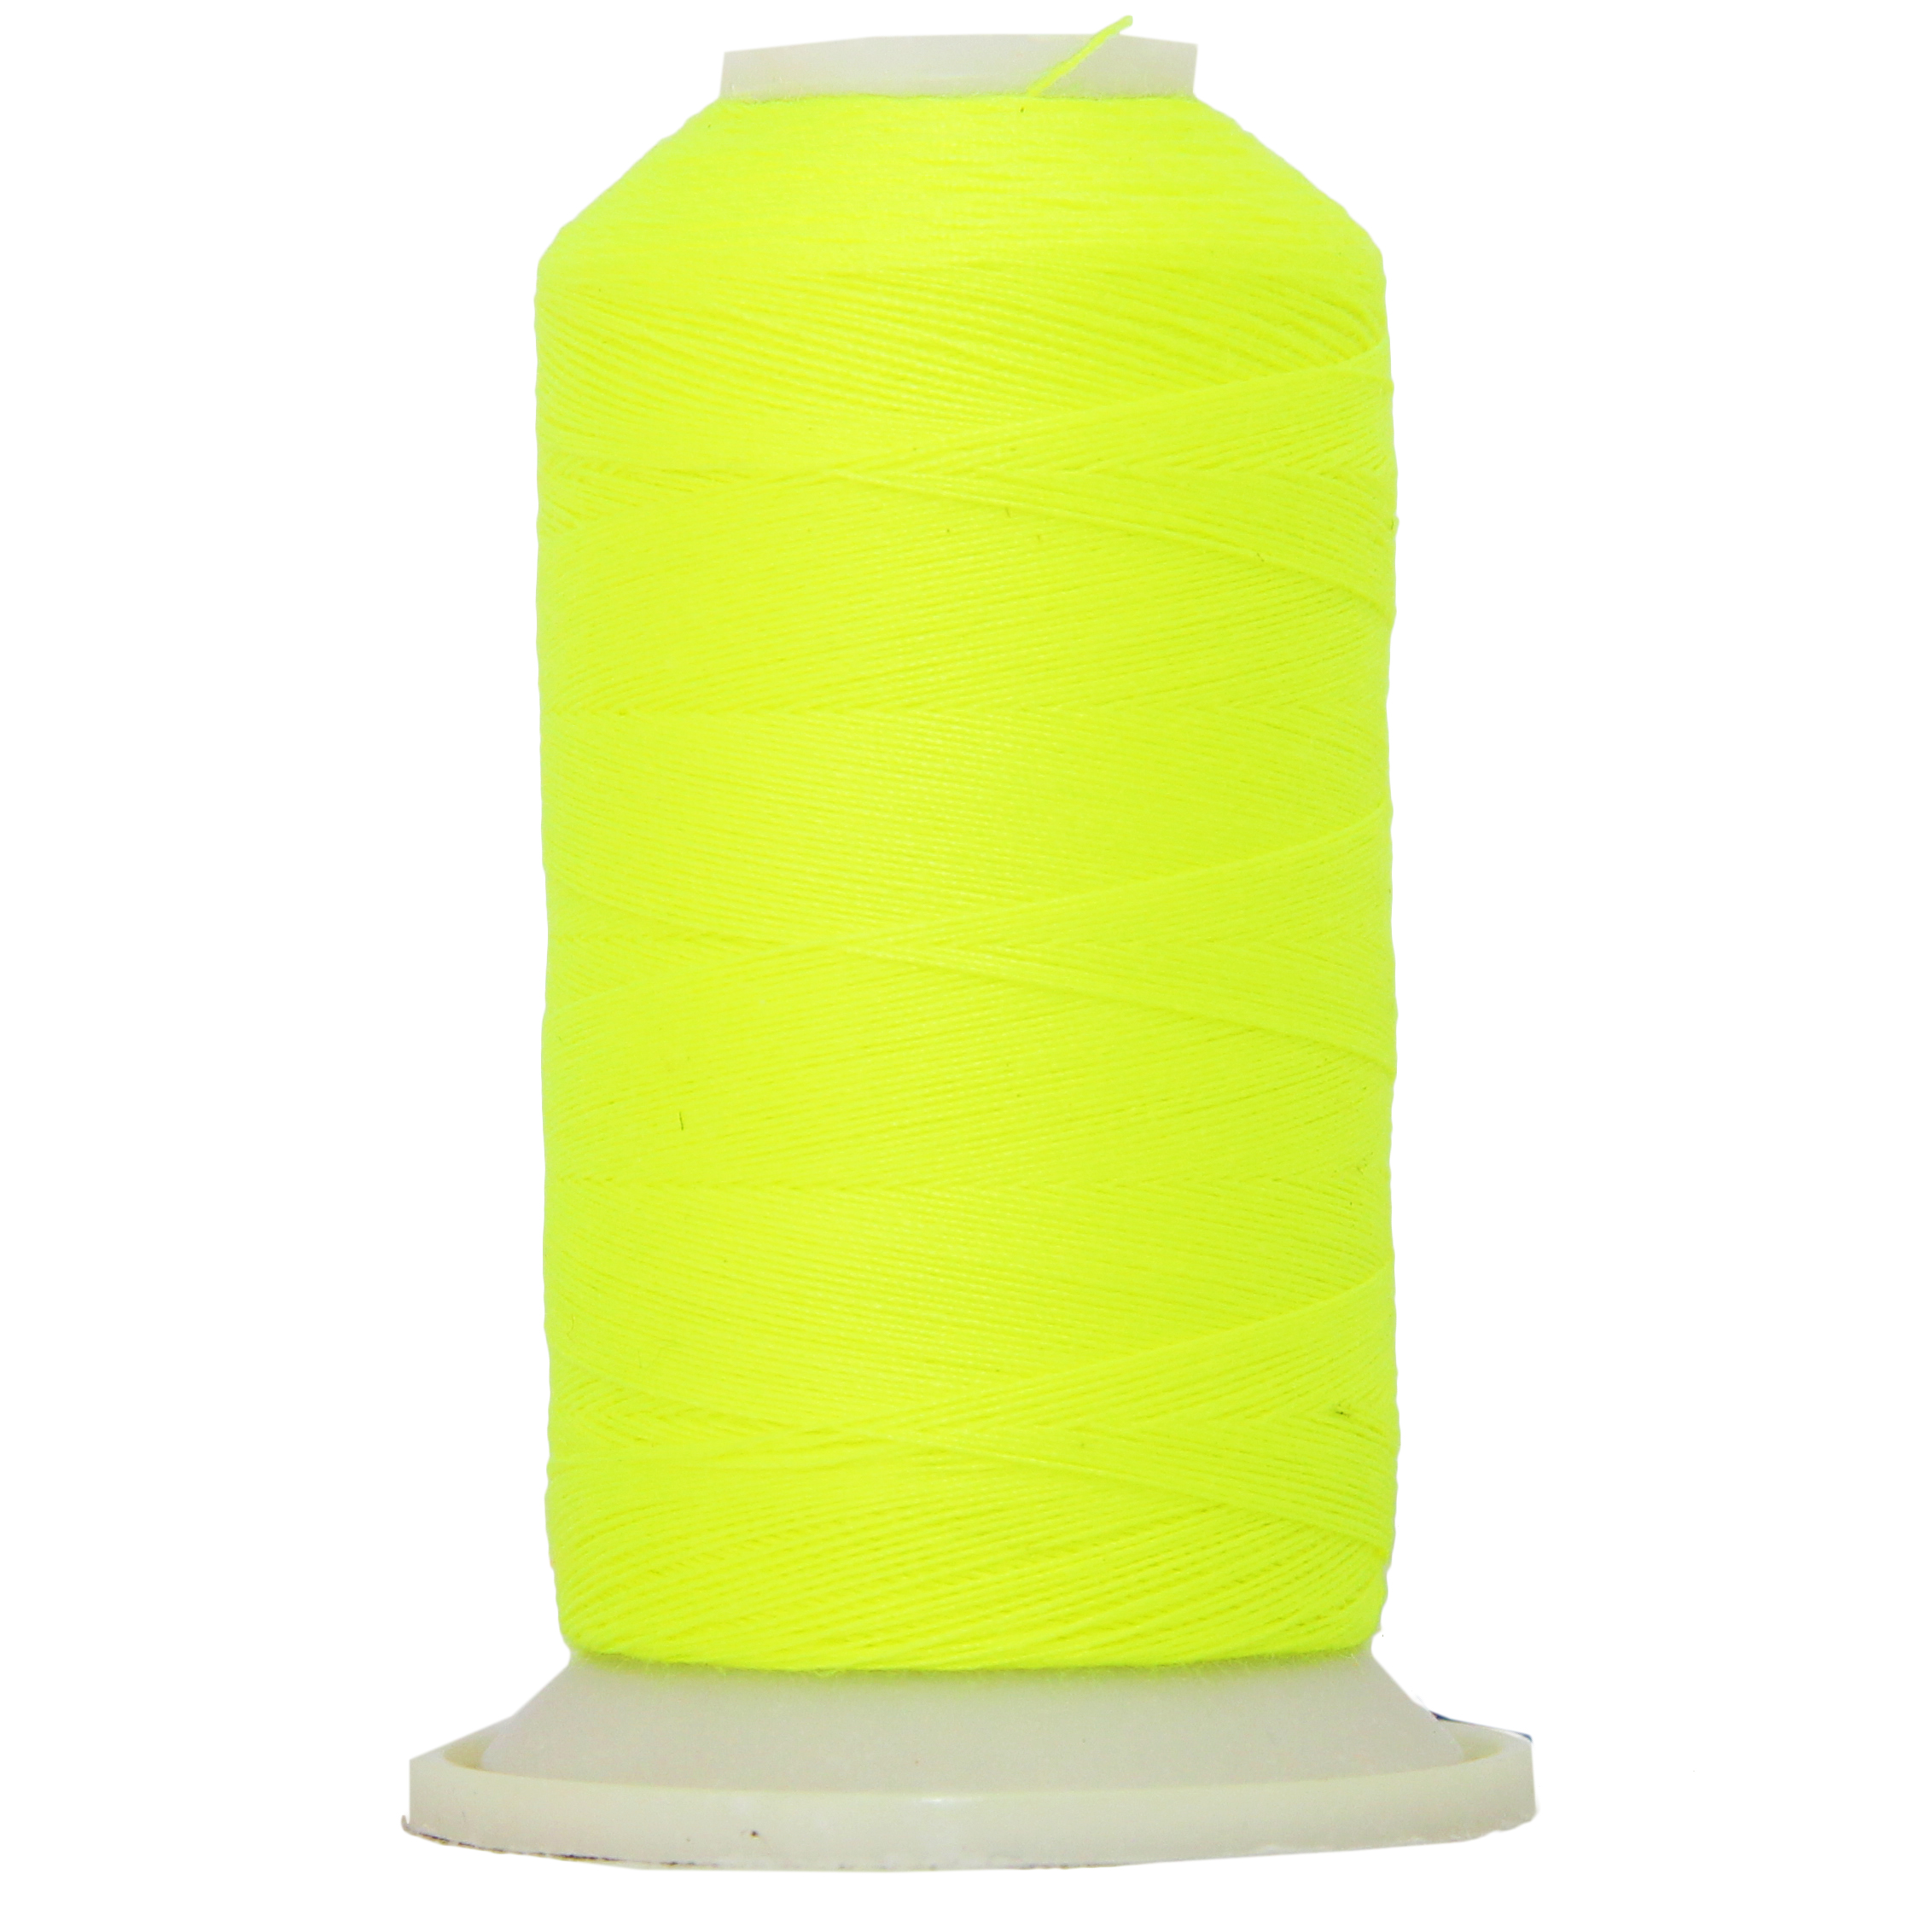 Length Cord Spool DIY Hand Machine Craft Tools for Fabric Clothes Neon Retro Colors All Purpose Spun Polyester Sewing Thread 600 Yard 500 m